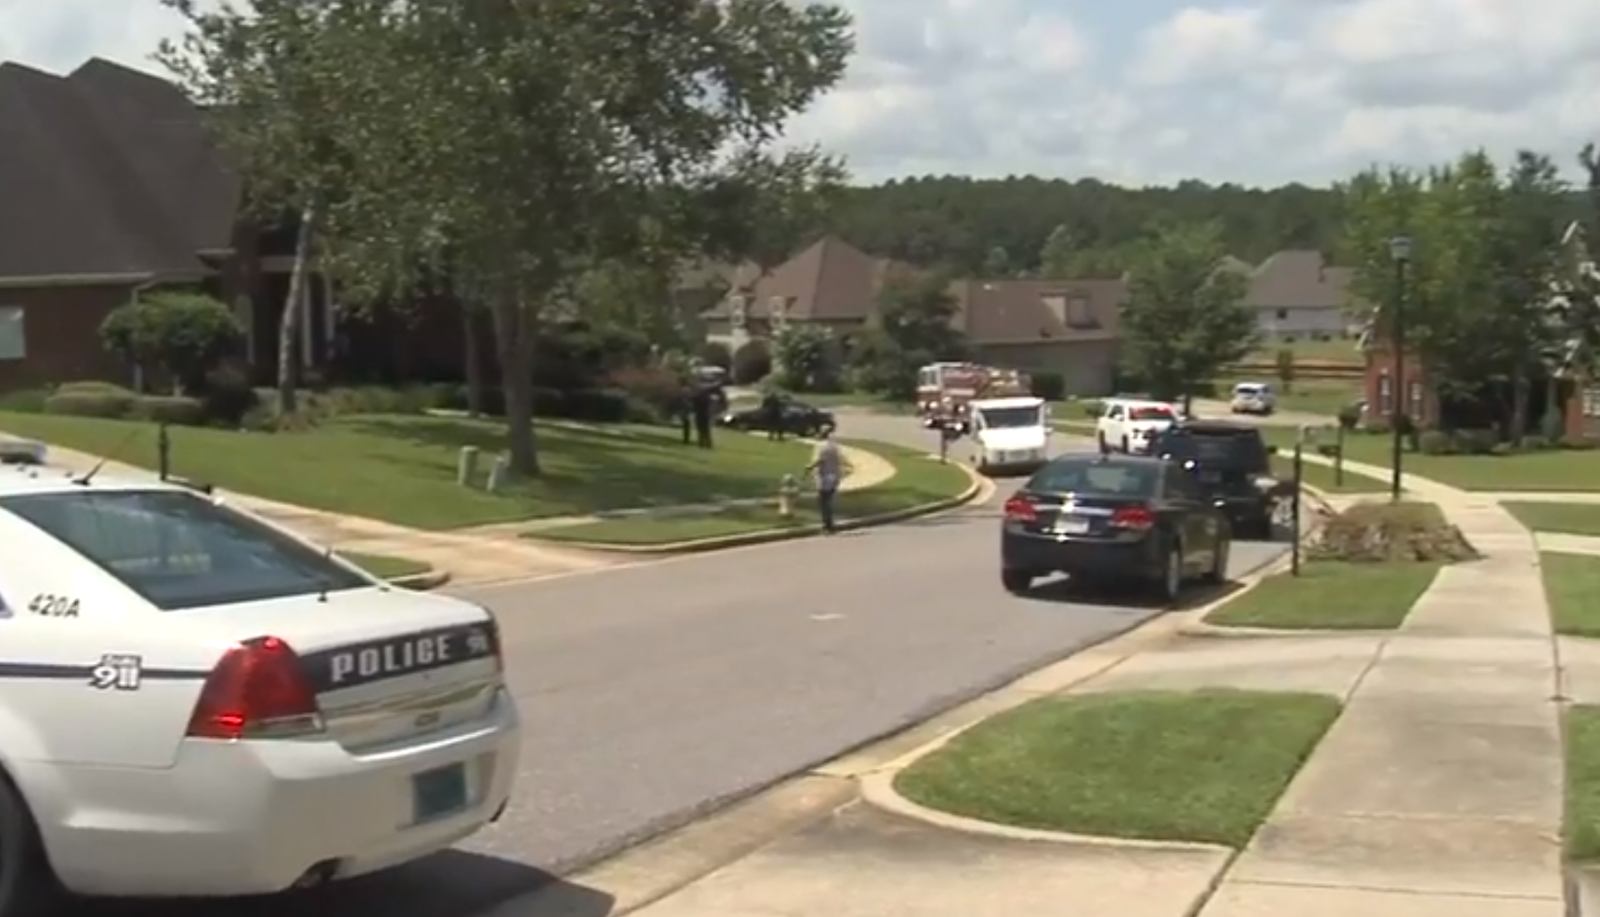 (IMAGE: WPMI) Mobile Police respond to report of multiple stabbing